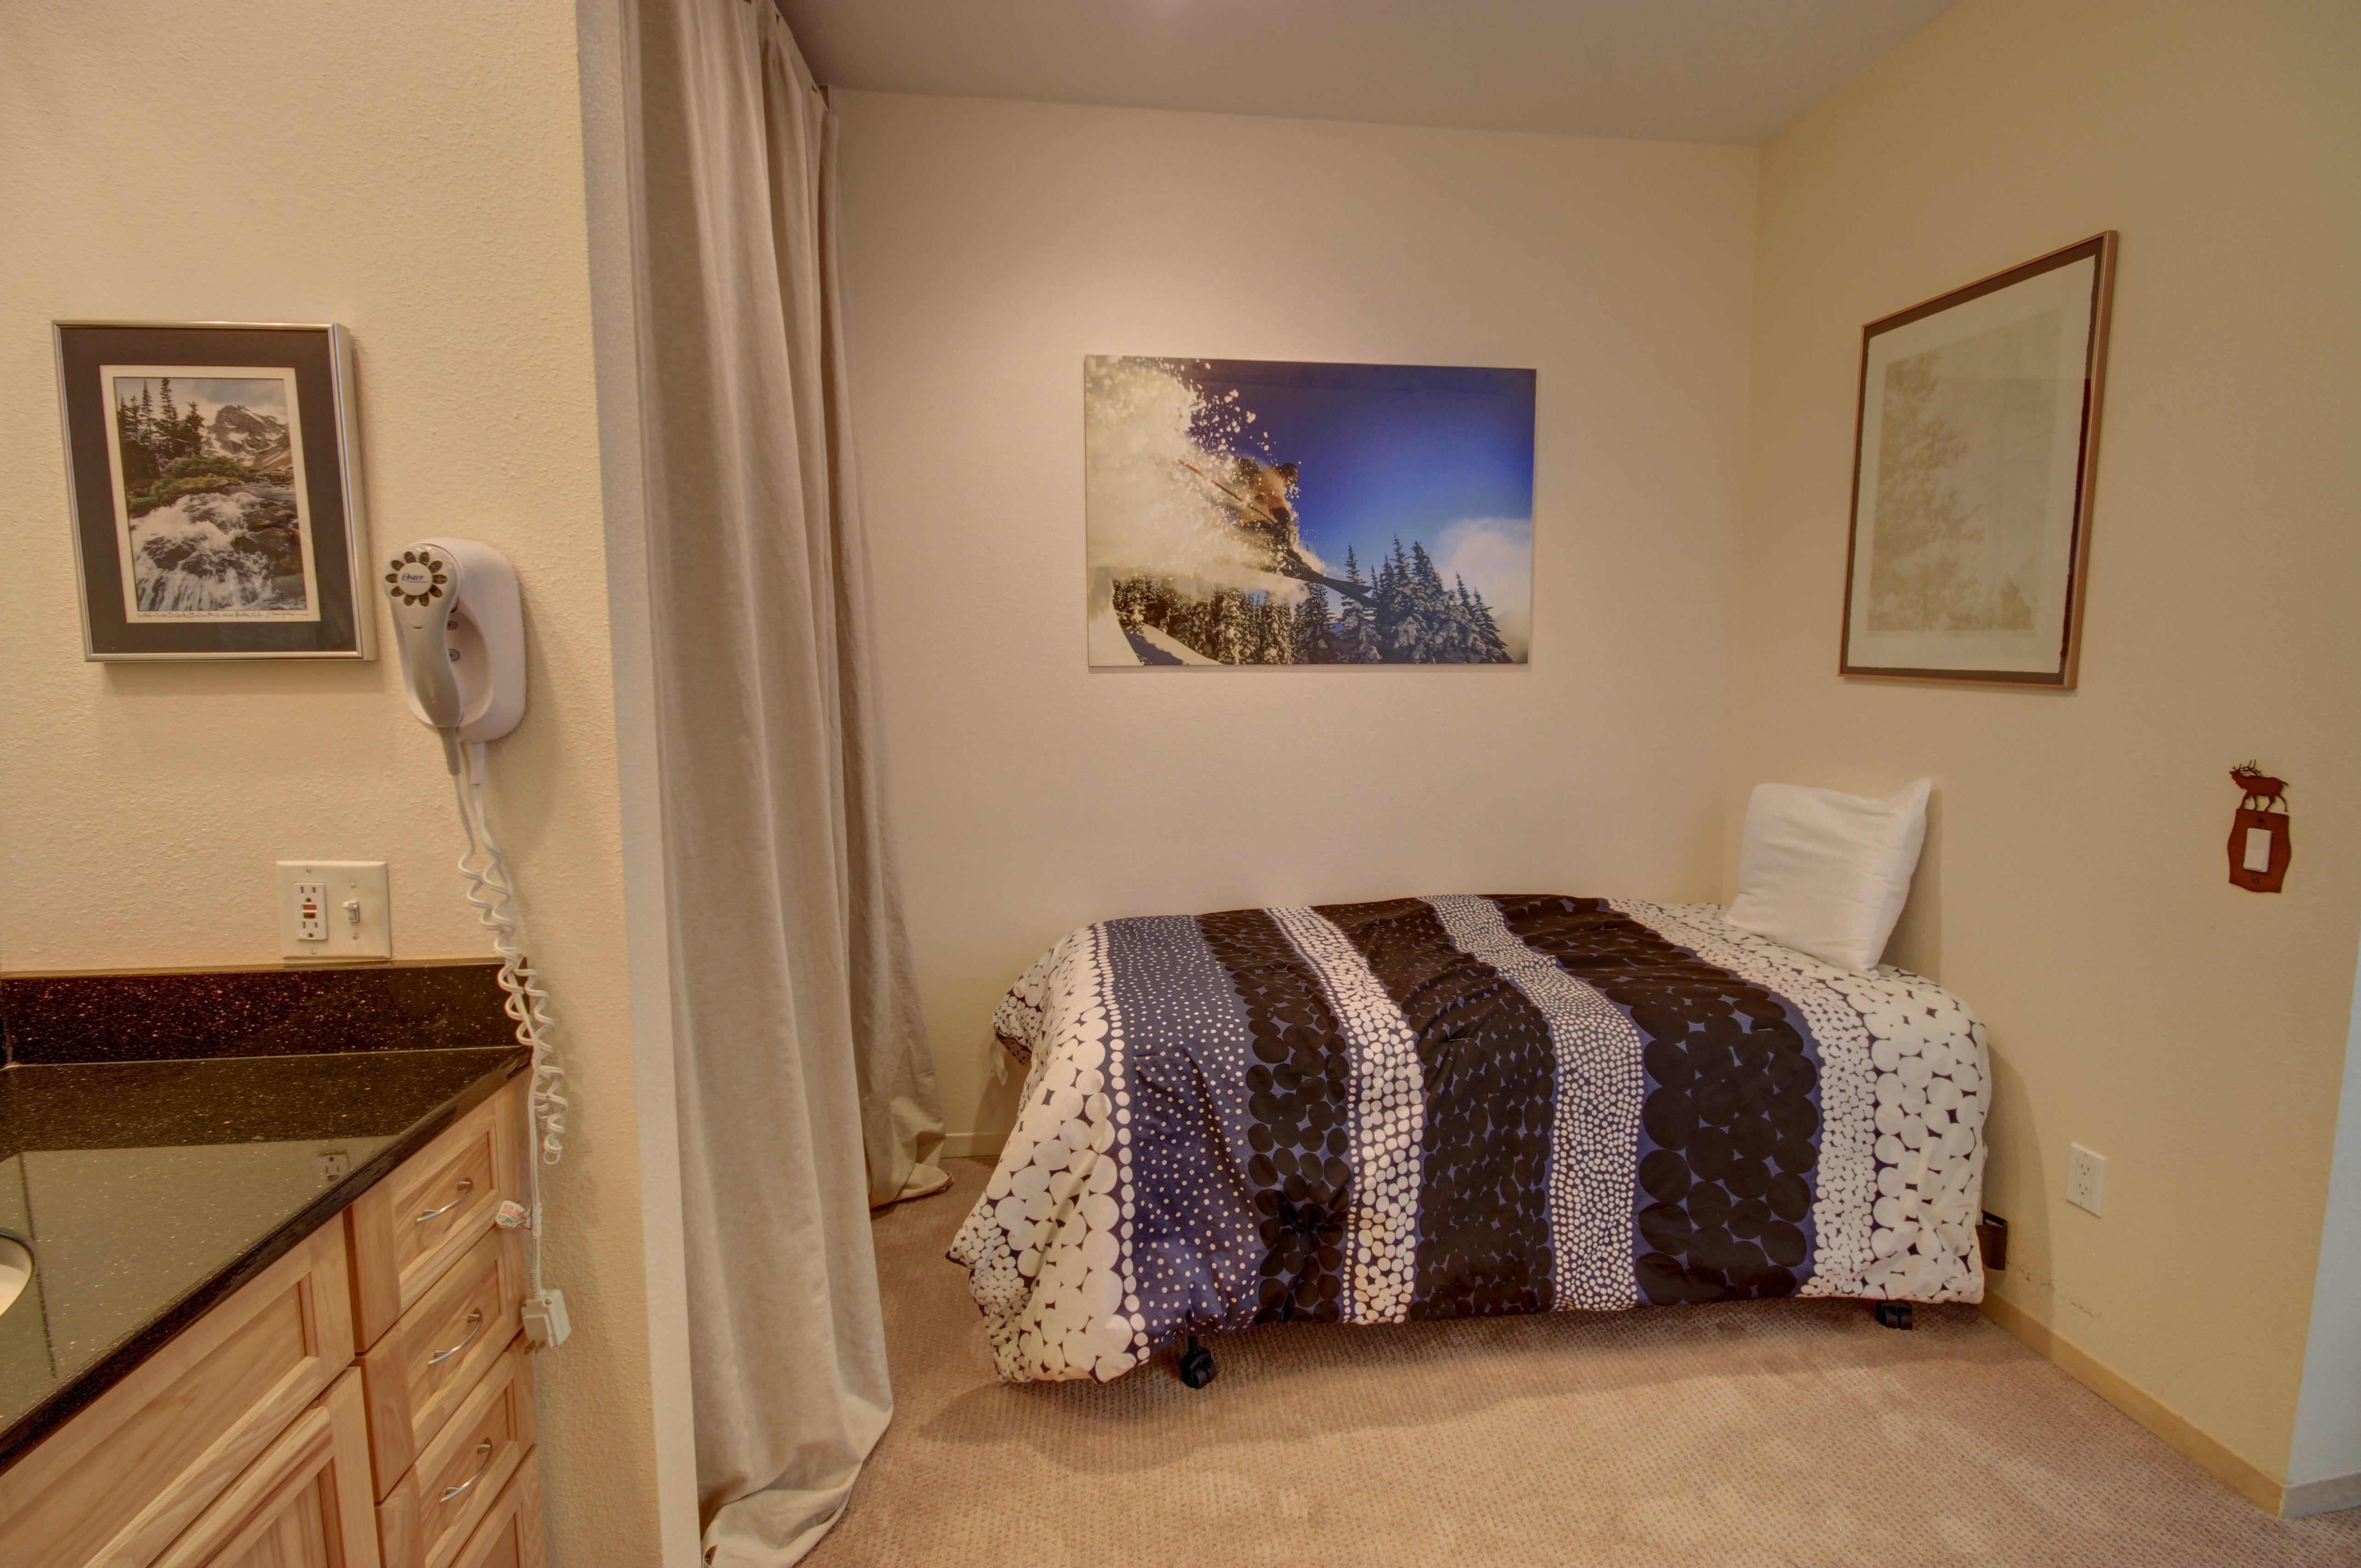 Comfortable beds to relax in and get a good sleep